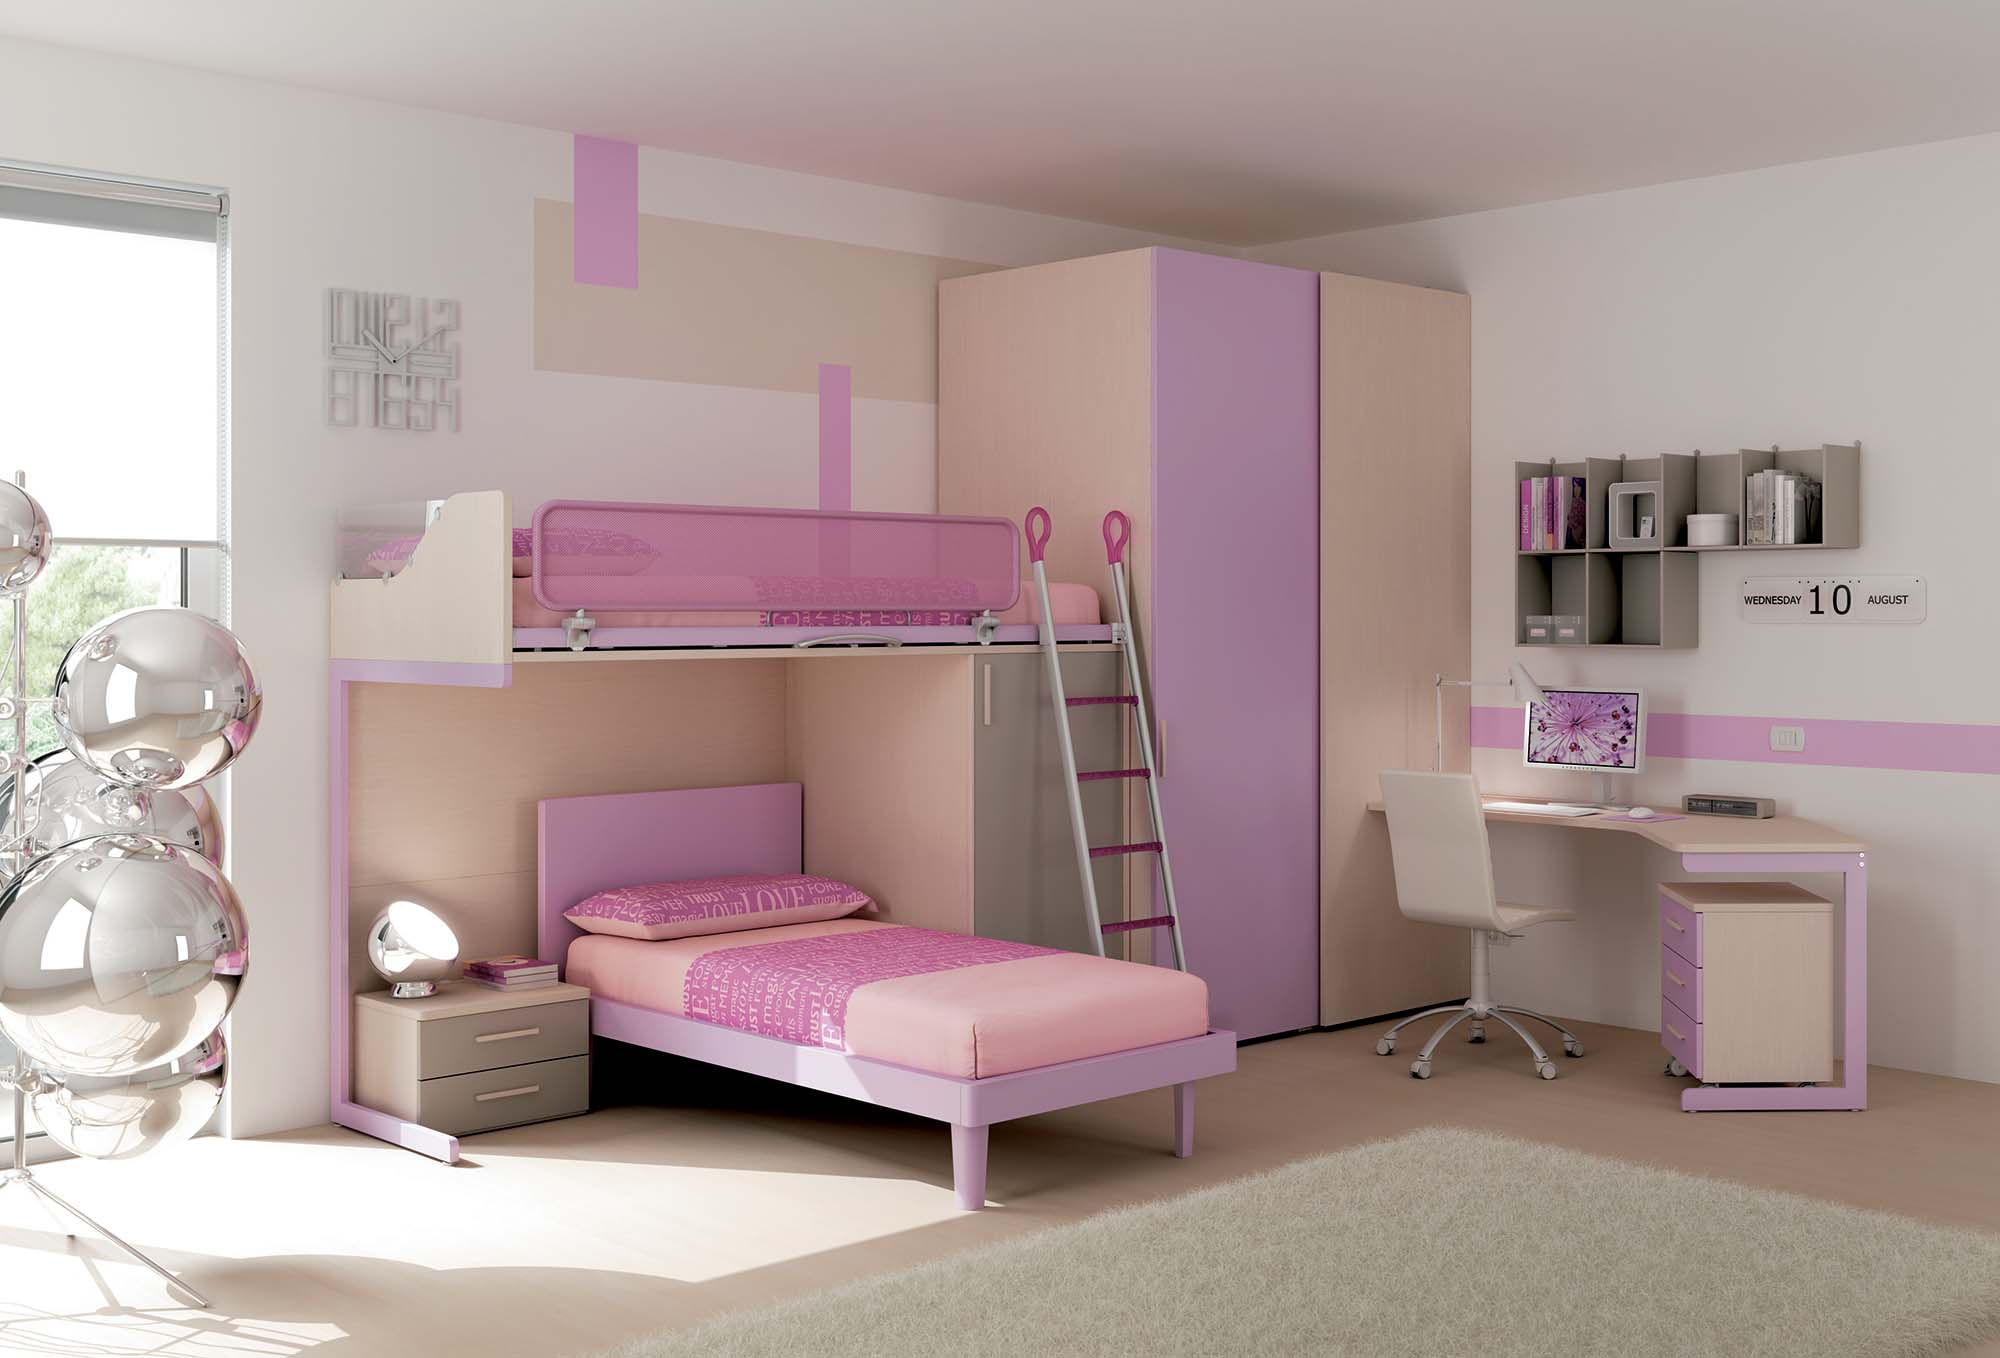 chambre enfant lits superpos s ton pastel moretti compact so nuit. Black Bedroom Furniture Sets. Home Design Ideas